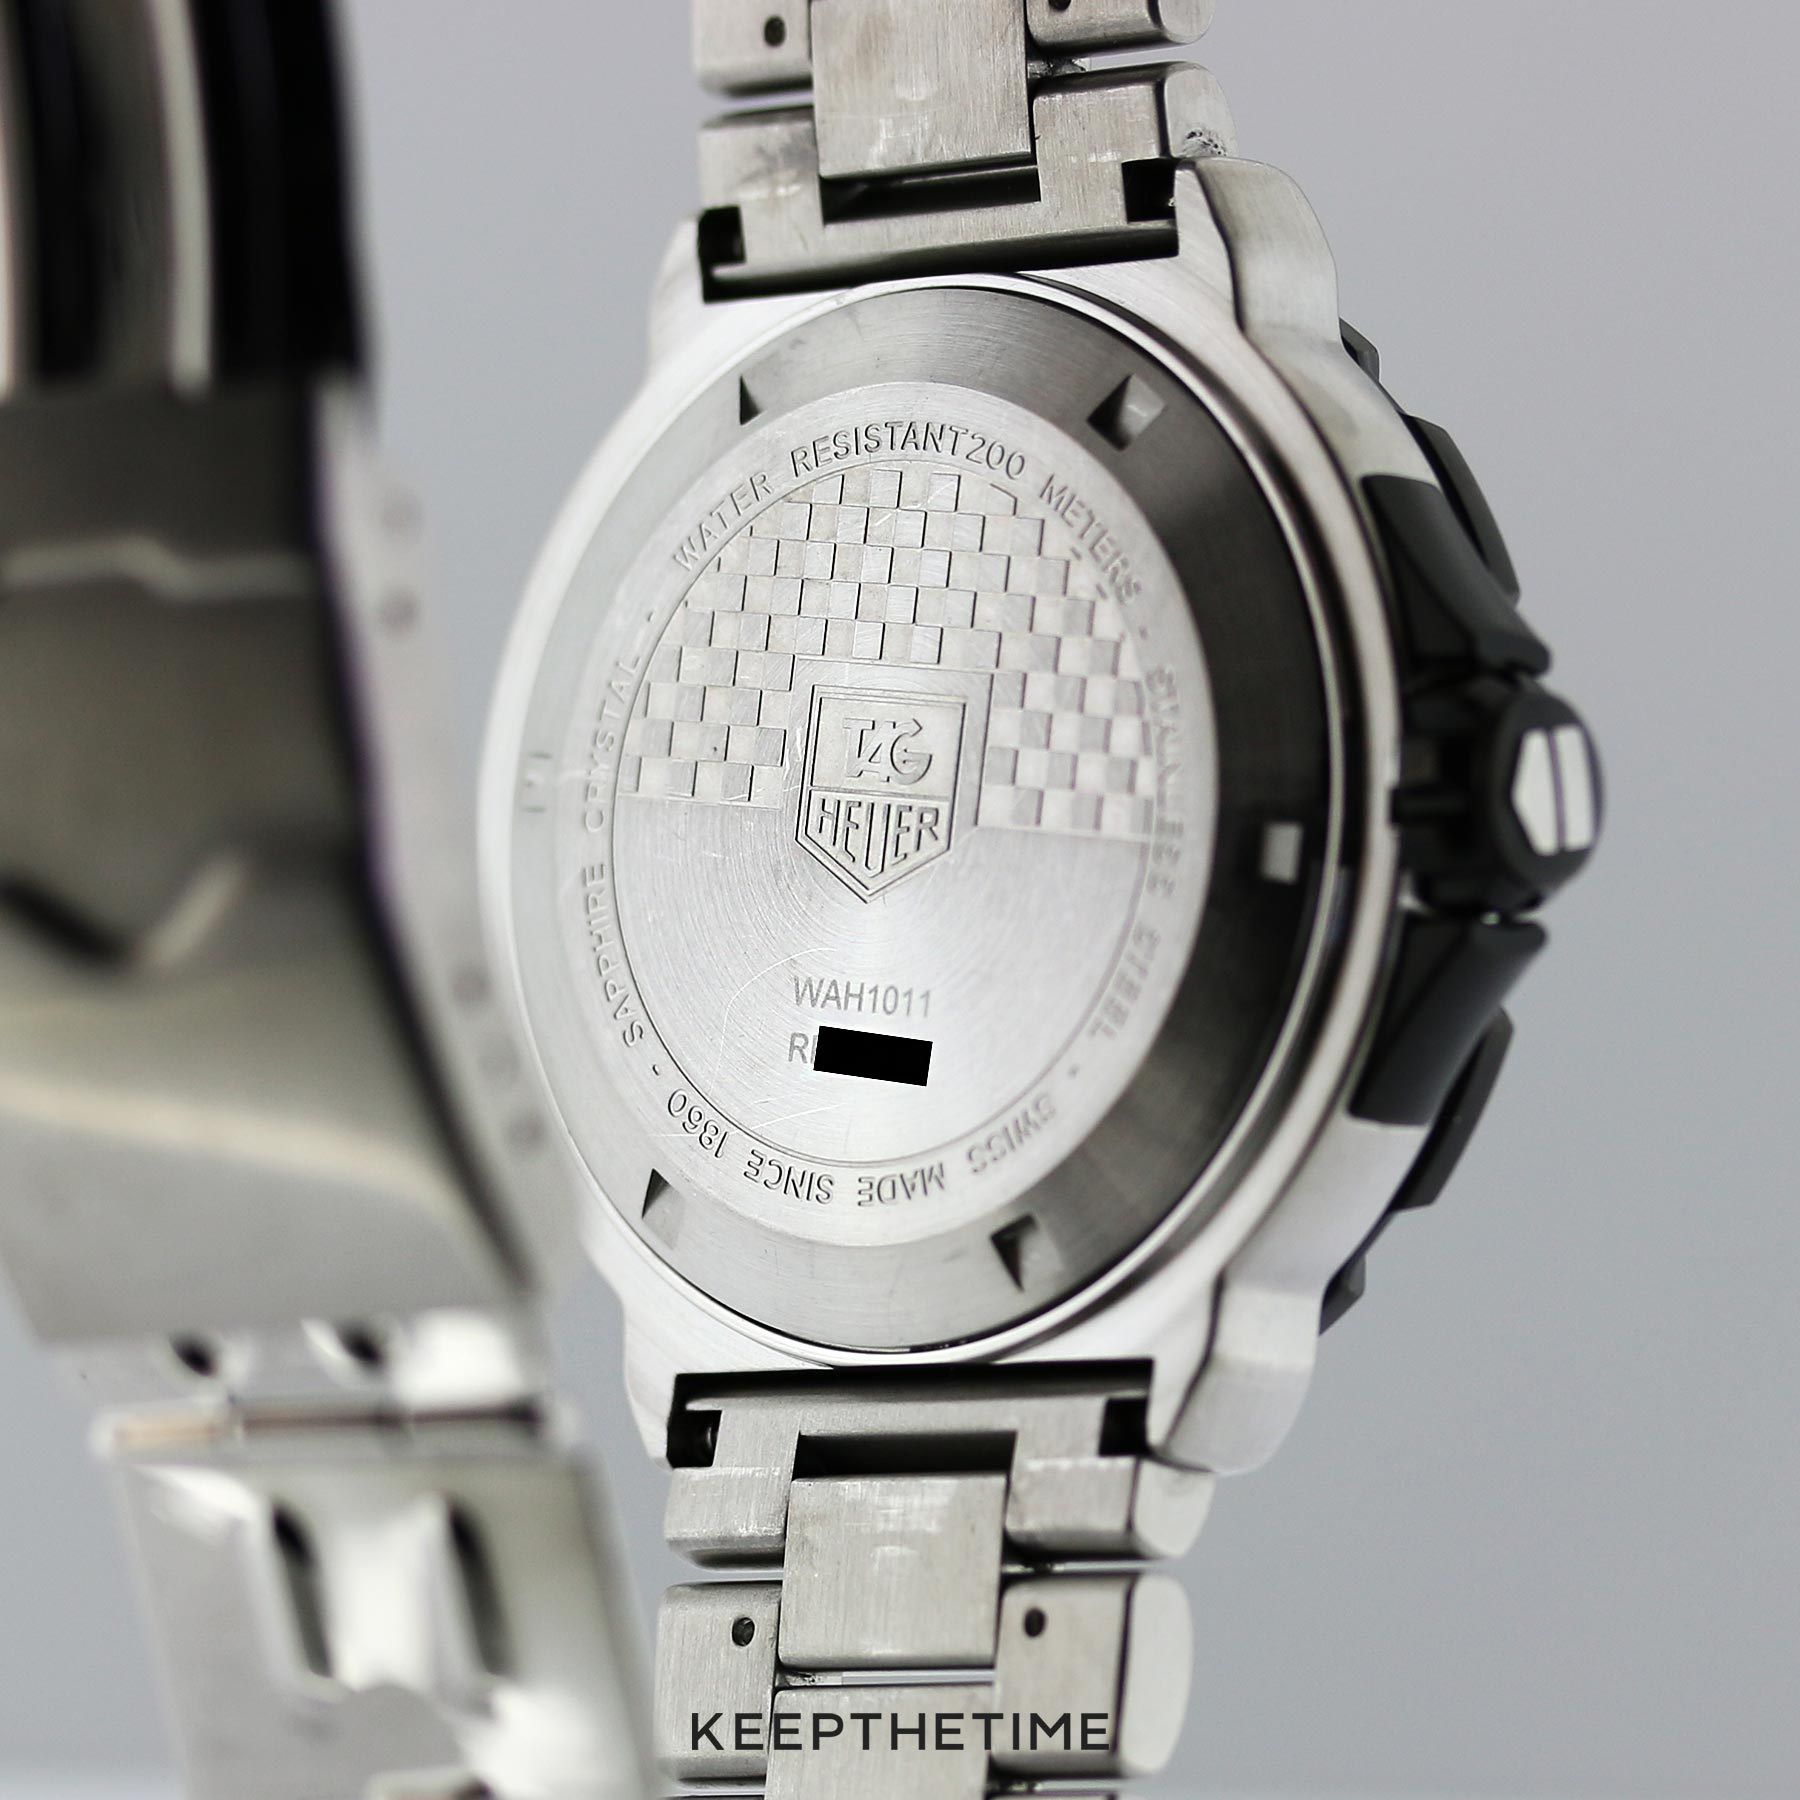 Tag Heuer F1 Grande Date Lume Dial Sport Watch with Big Date